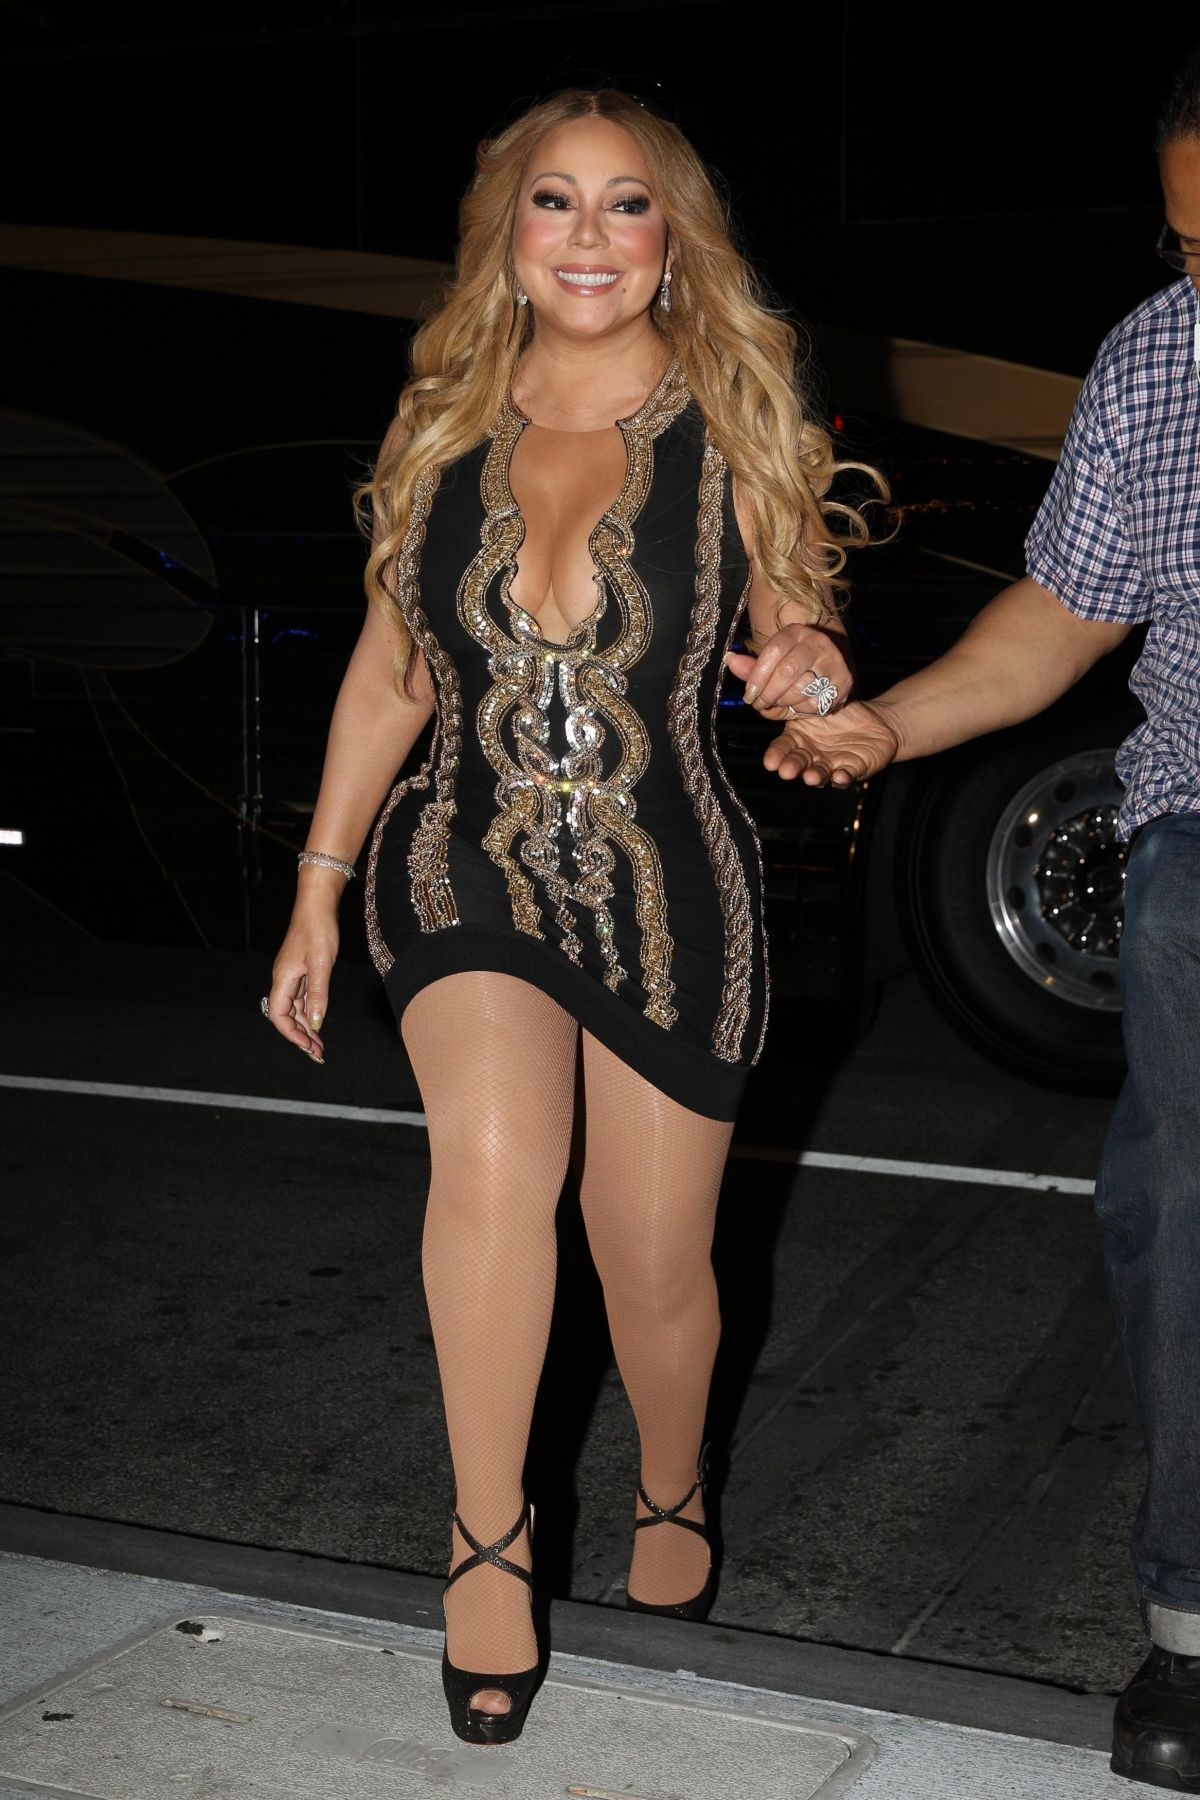 Mariah Carey Out and about in Boston - Celebzz